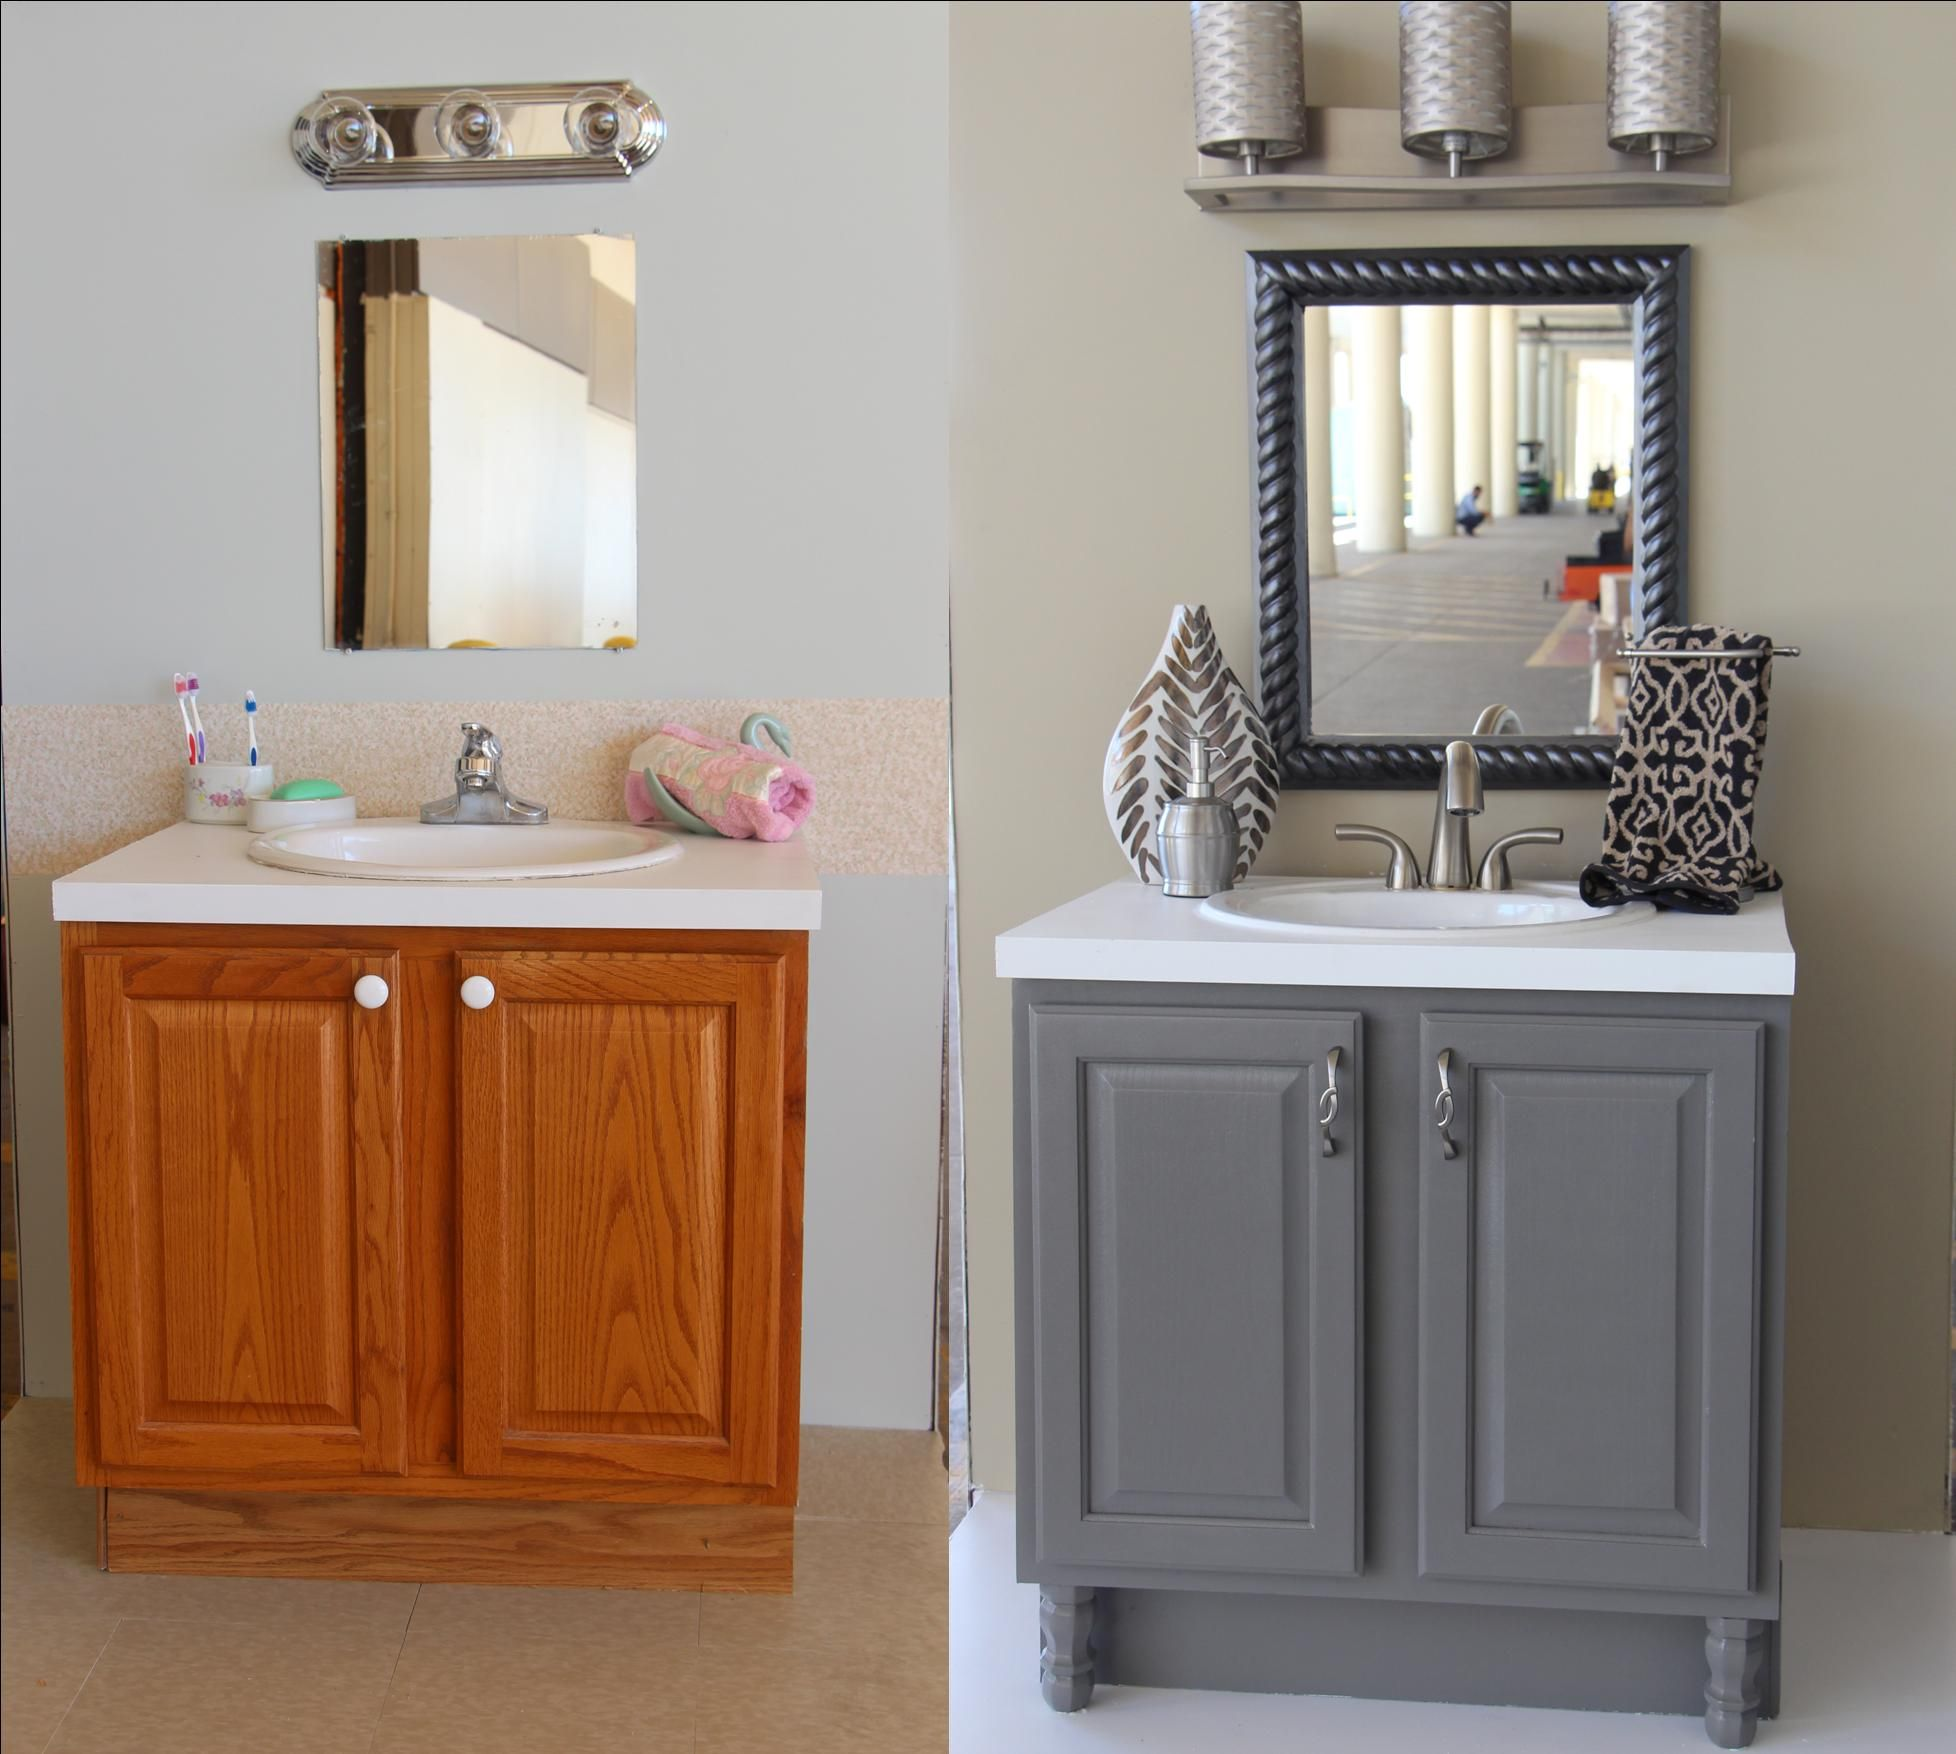 trendsetter bath before and after with accessories upcycled